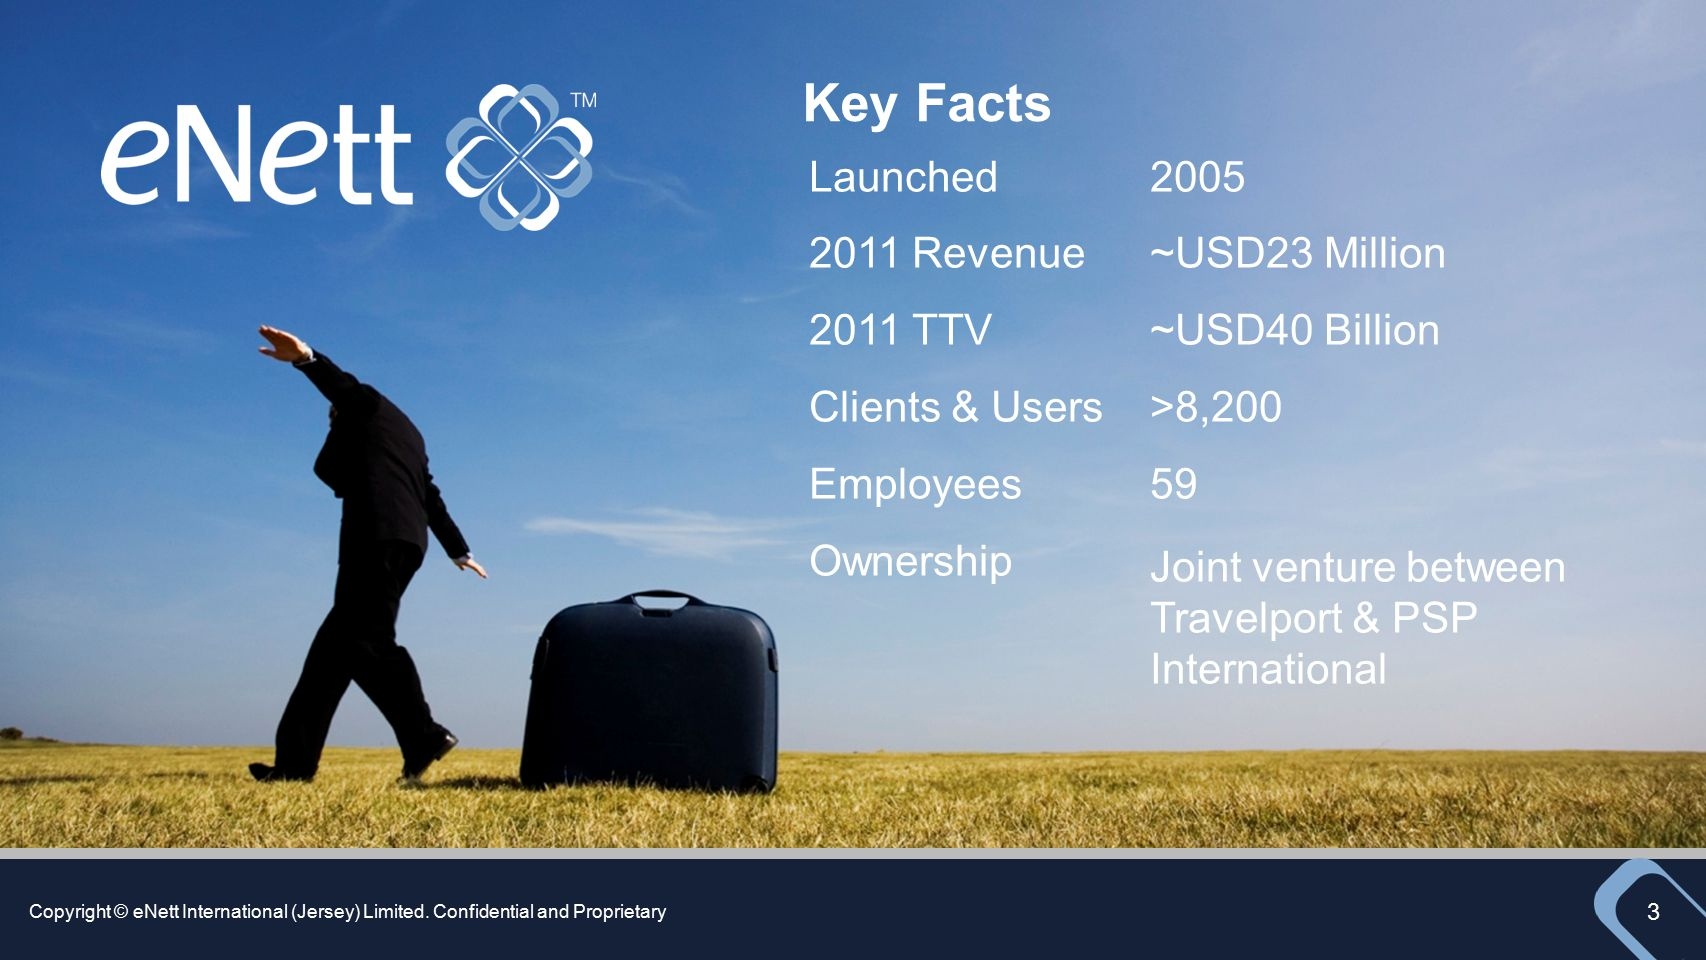 Key Facts Launched 2011 Revenue 2011 TTV Clients & Users Employees